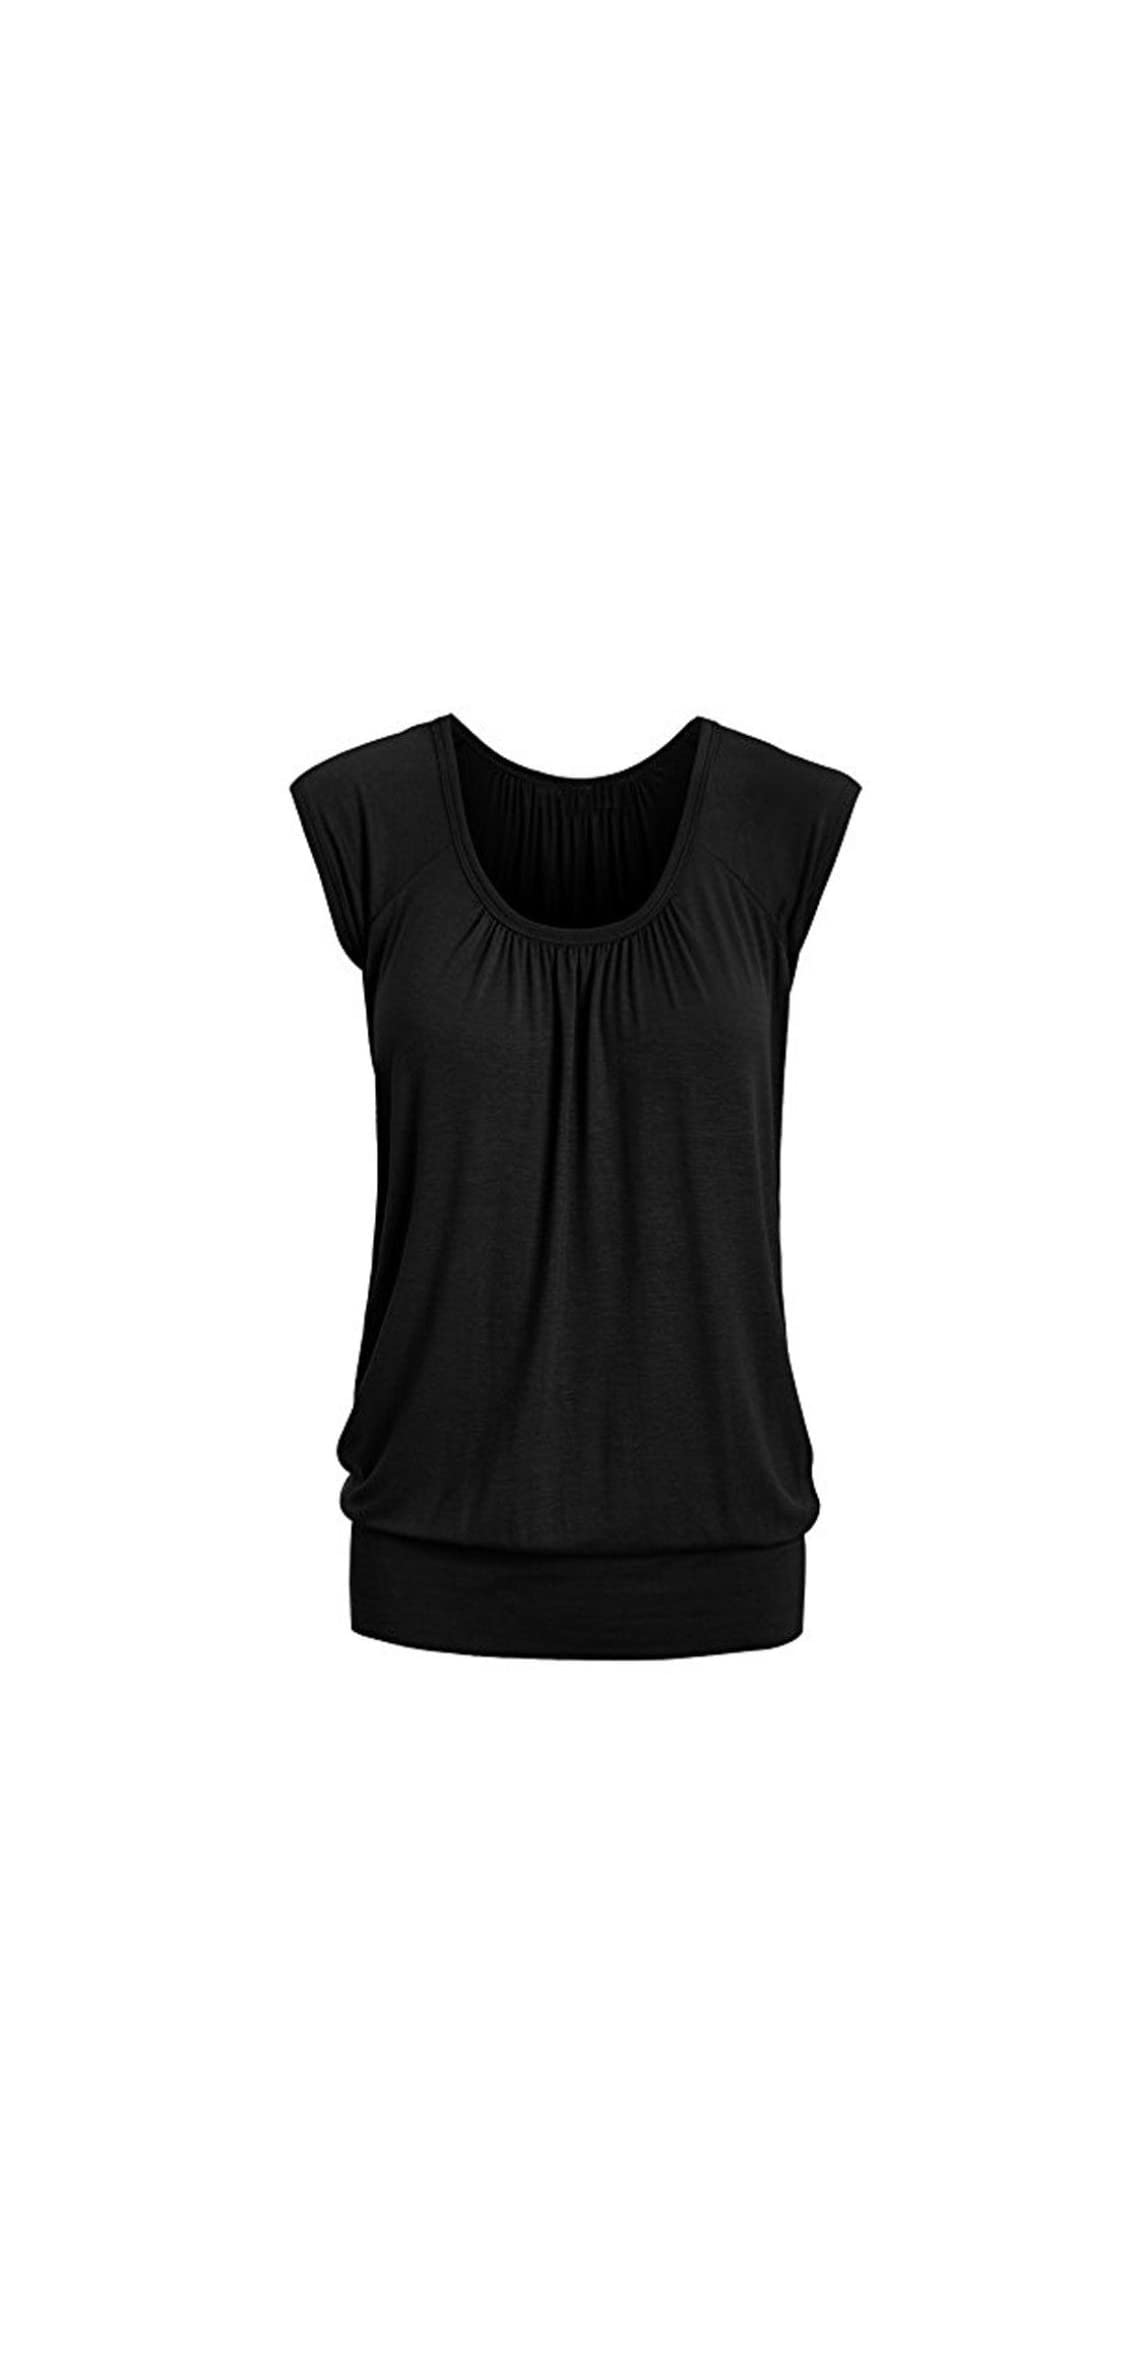 Women Summer Casual Round Neck Solid Short Sleeve Blouse